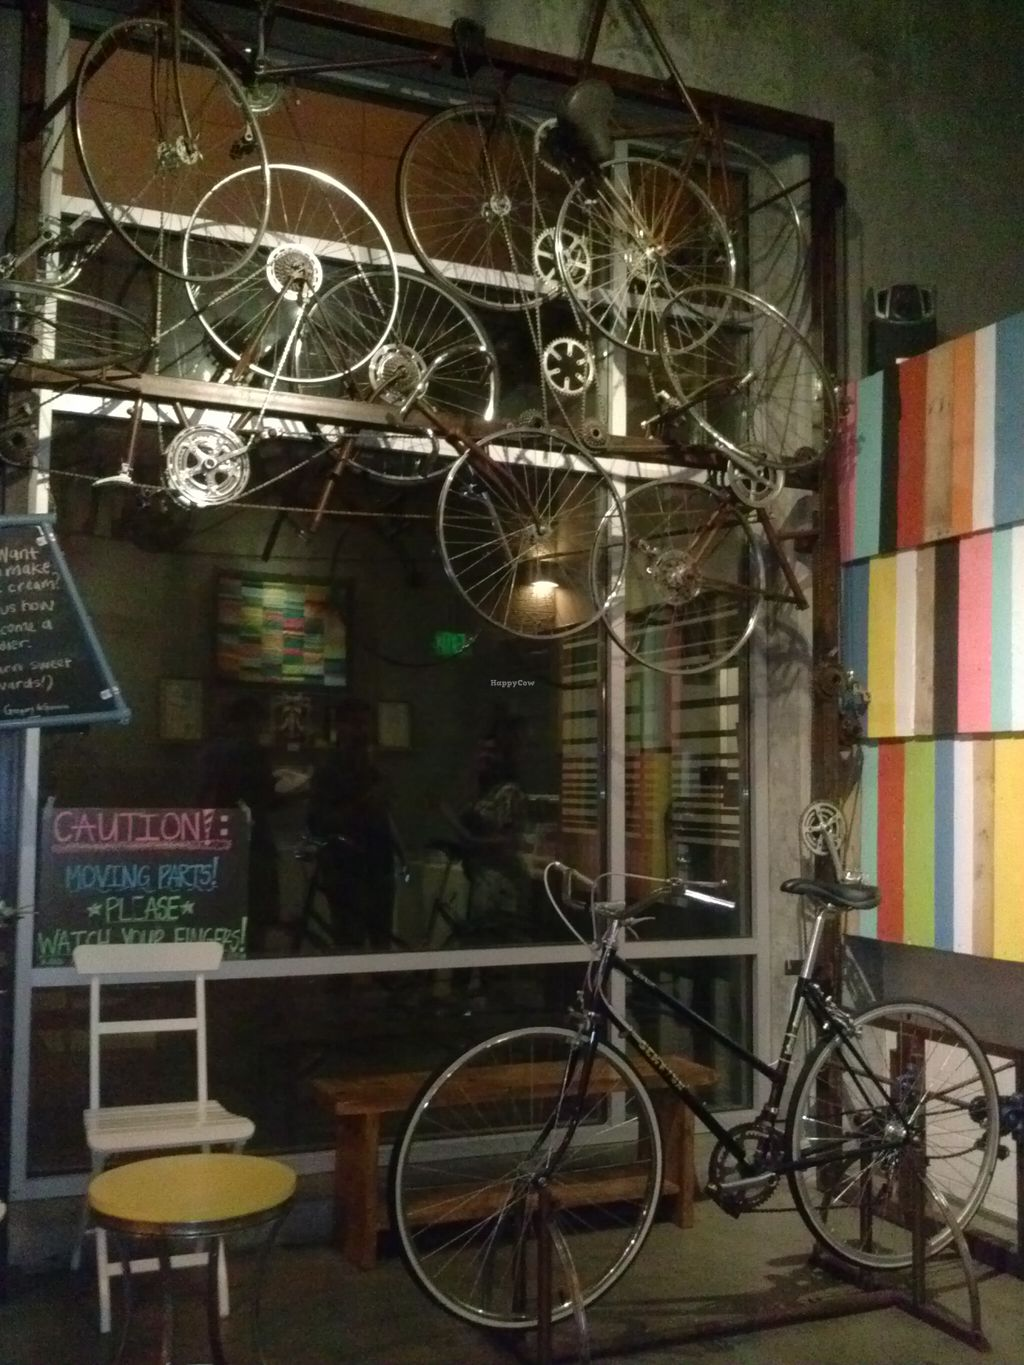 """Photo of Peddler's Creamery  by <a href=""""/members/profile/Sonja%20and%20Dirk"""">Sonja and Dirk</a> <br/>bicycles <br/> August 10, 2015  - <a href='/contact/abuse/image/51962/113027'>Report</a>"""